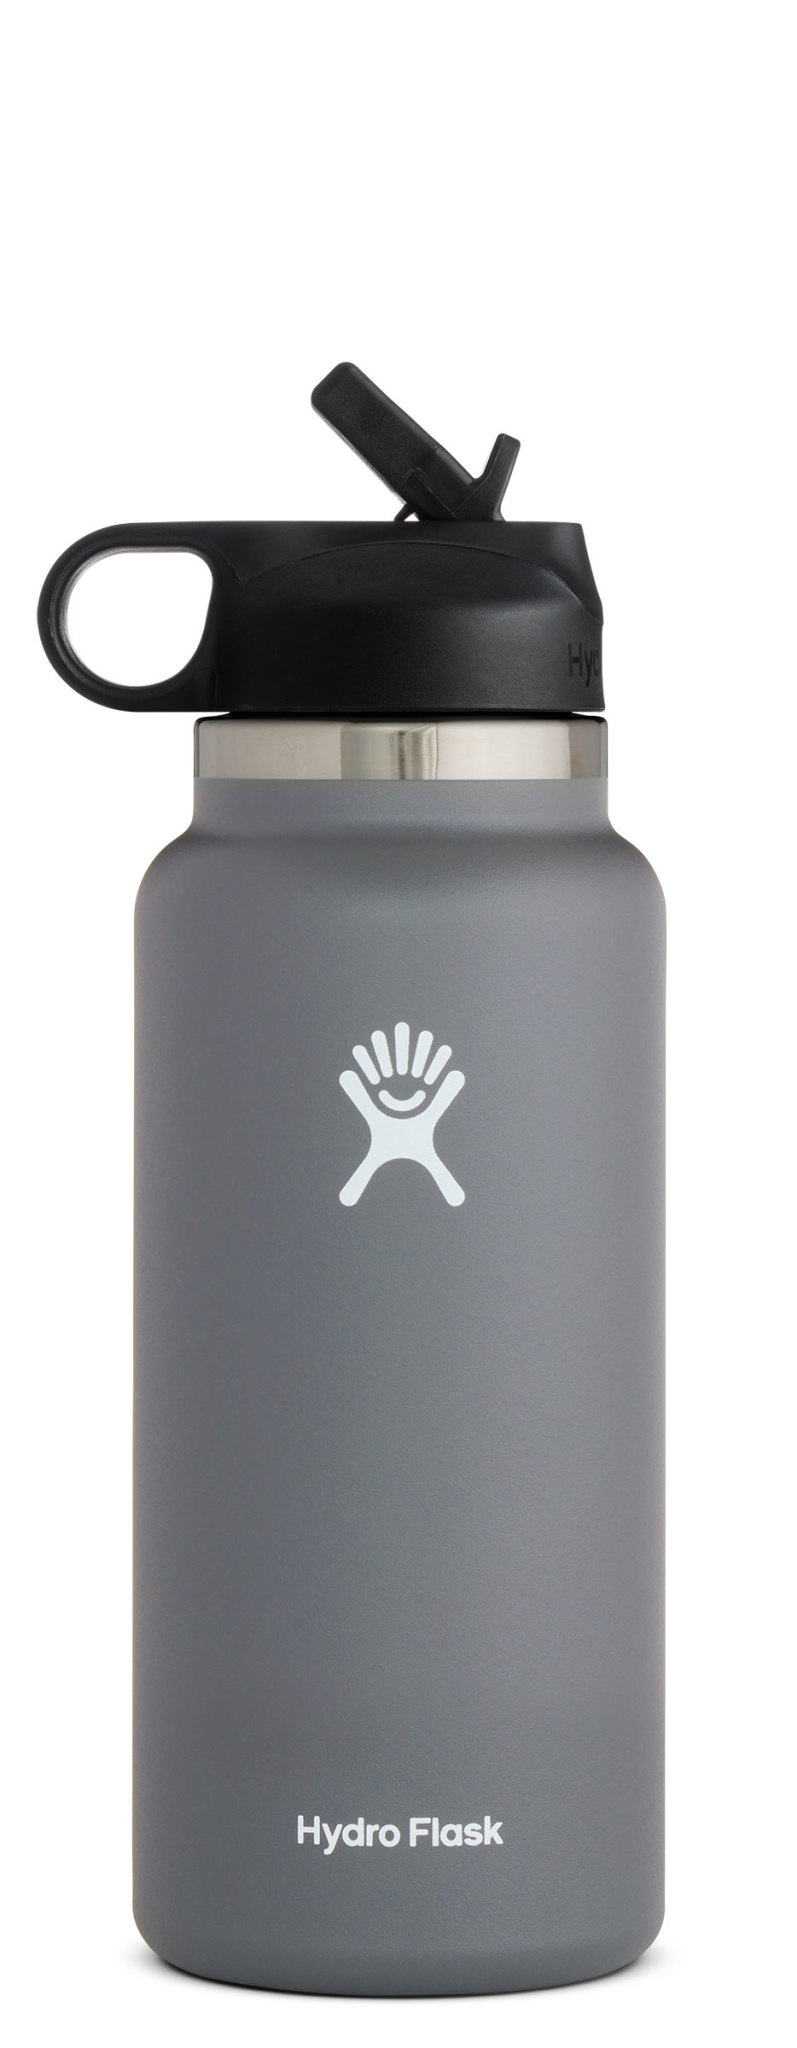 Hydro Flask 32oz Wide Mouth with Straw Lid-11